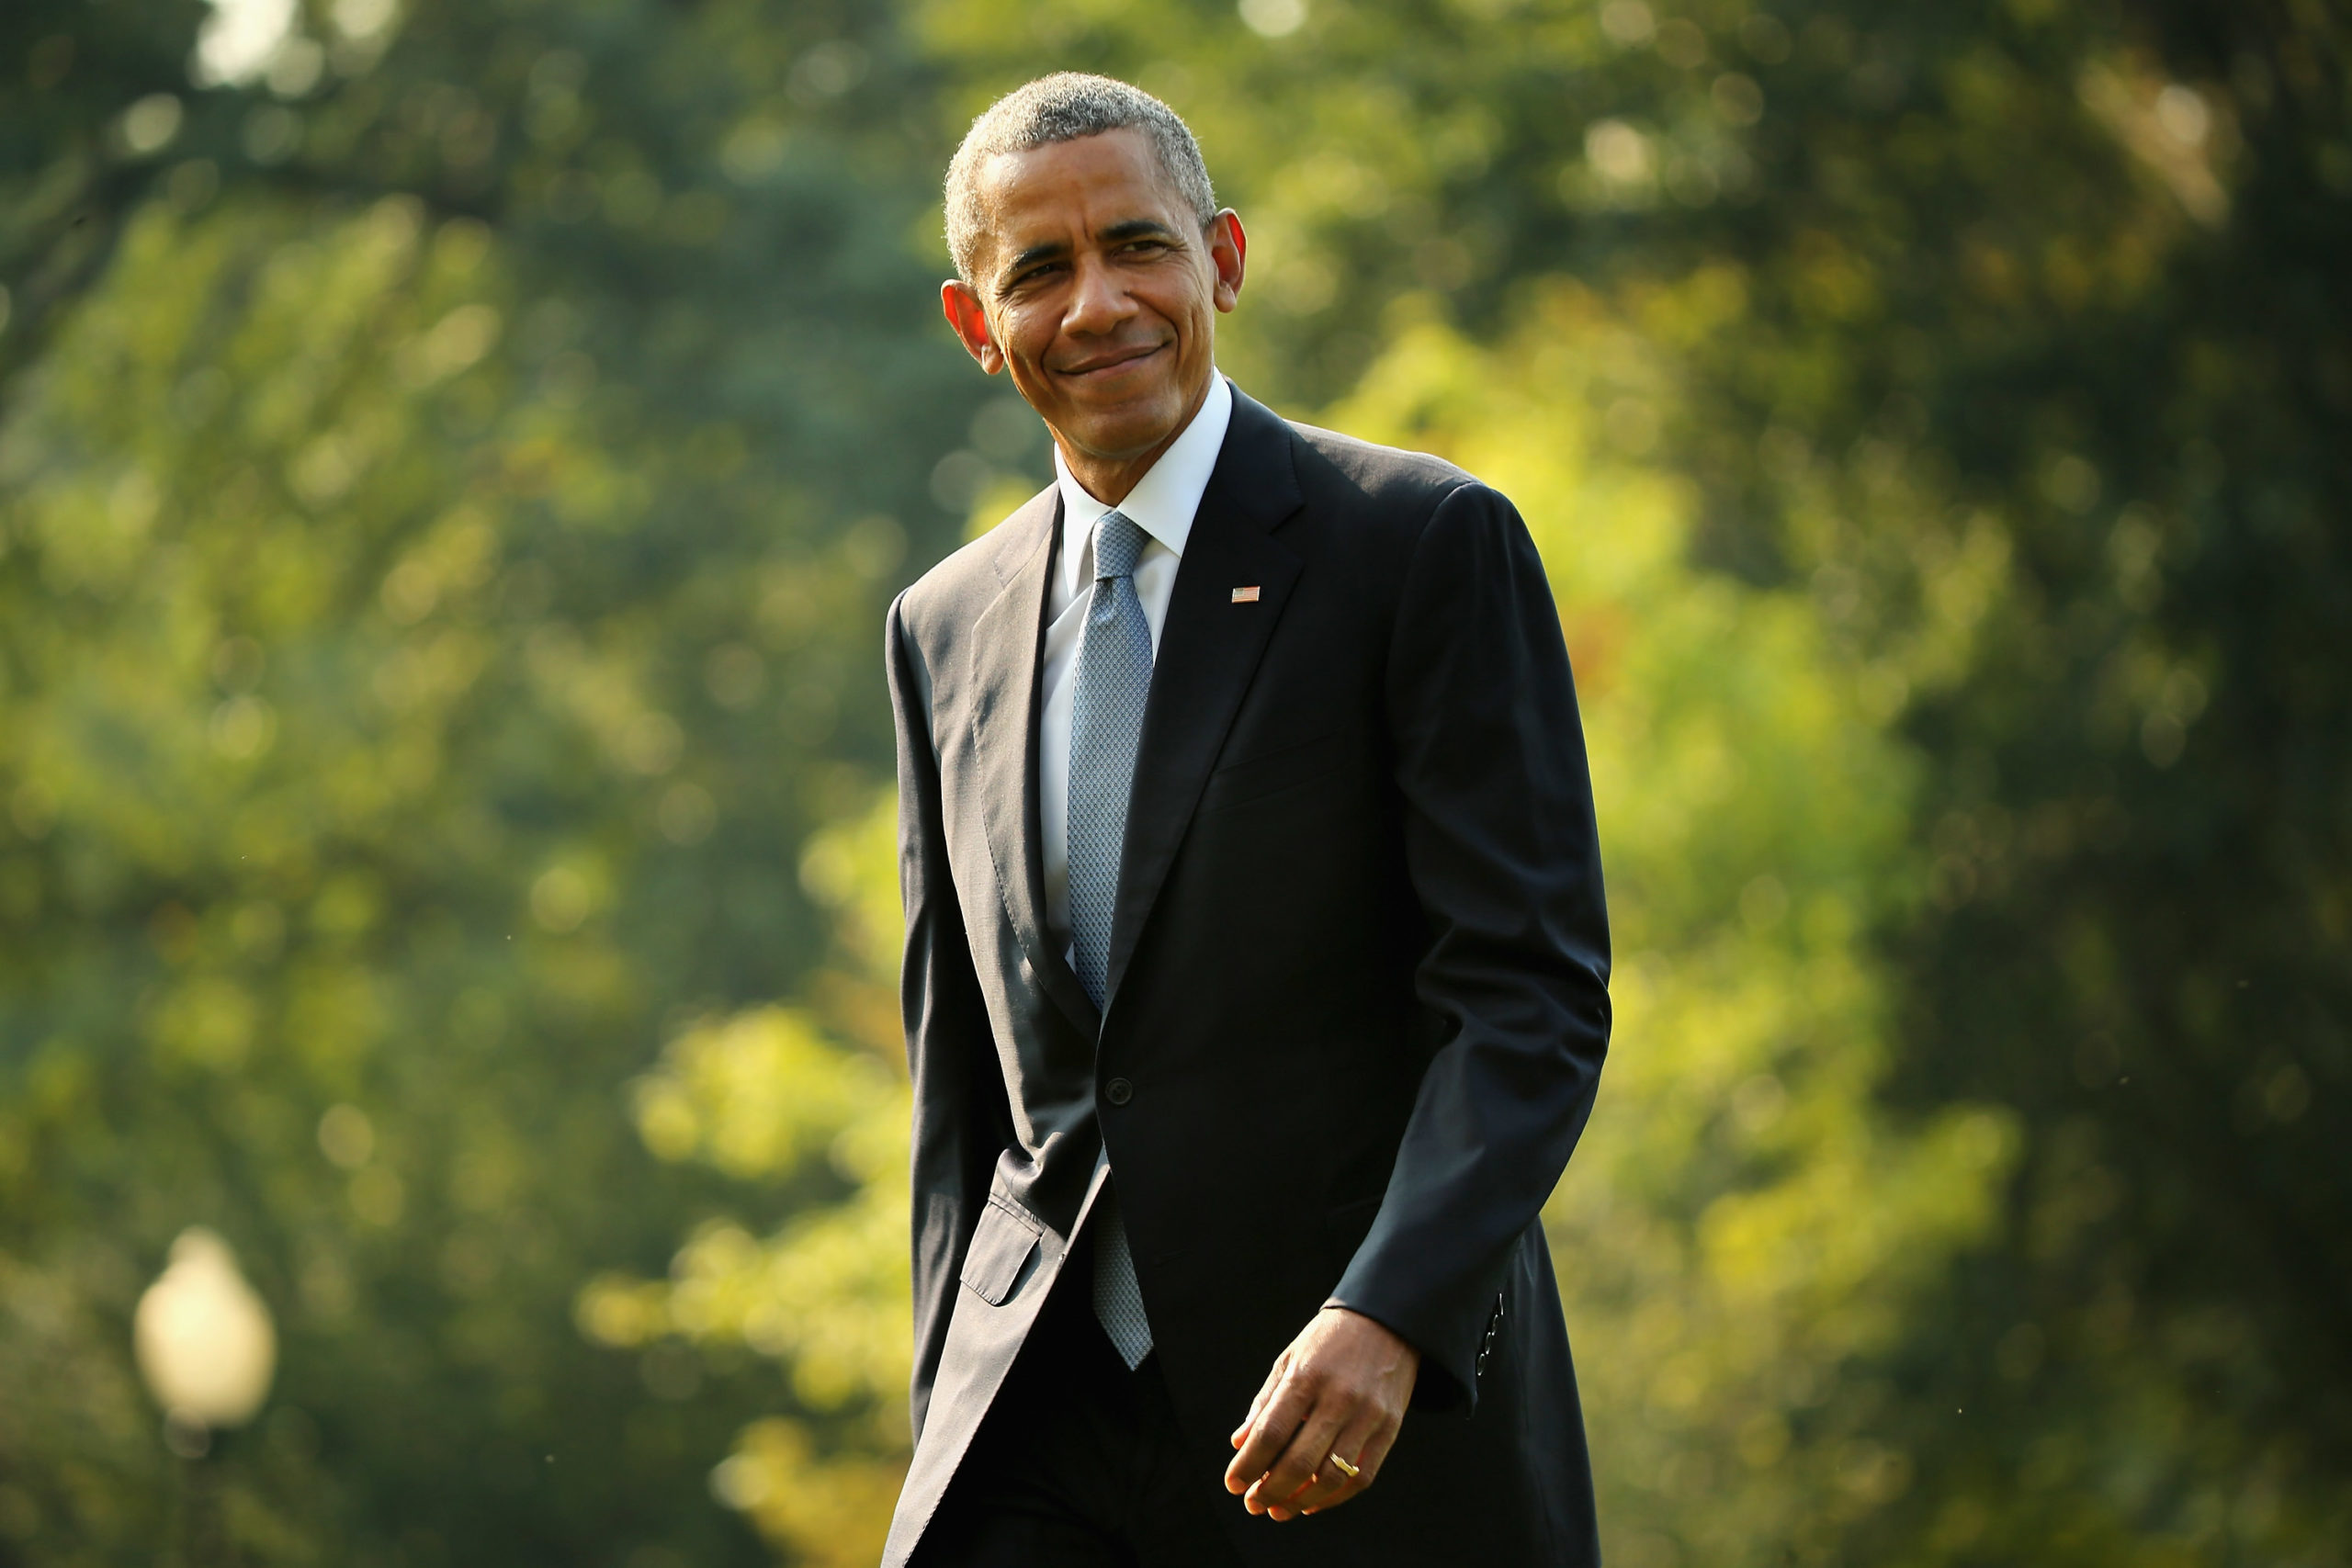 Interview with Barack Obama